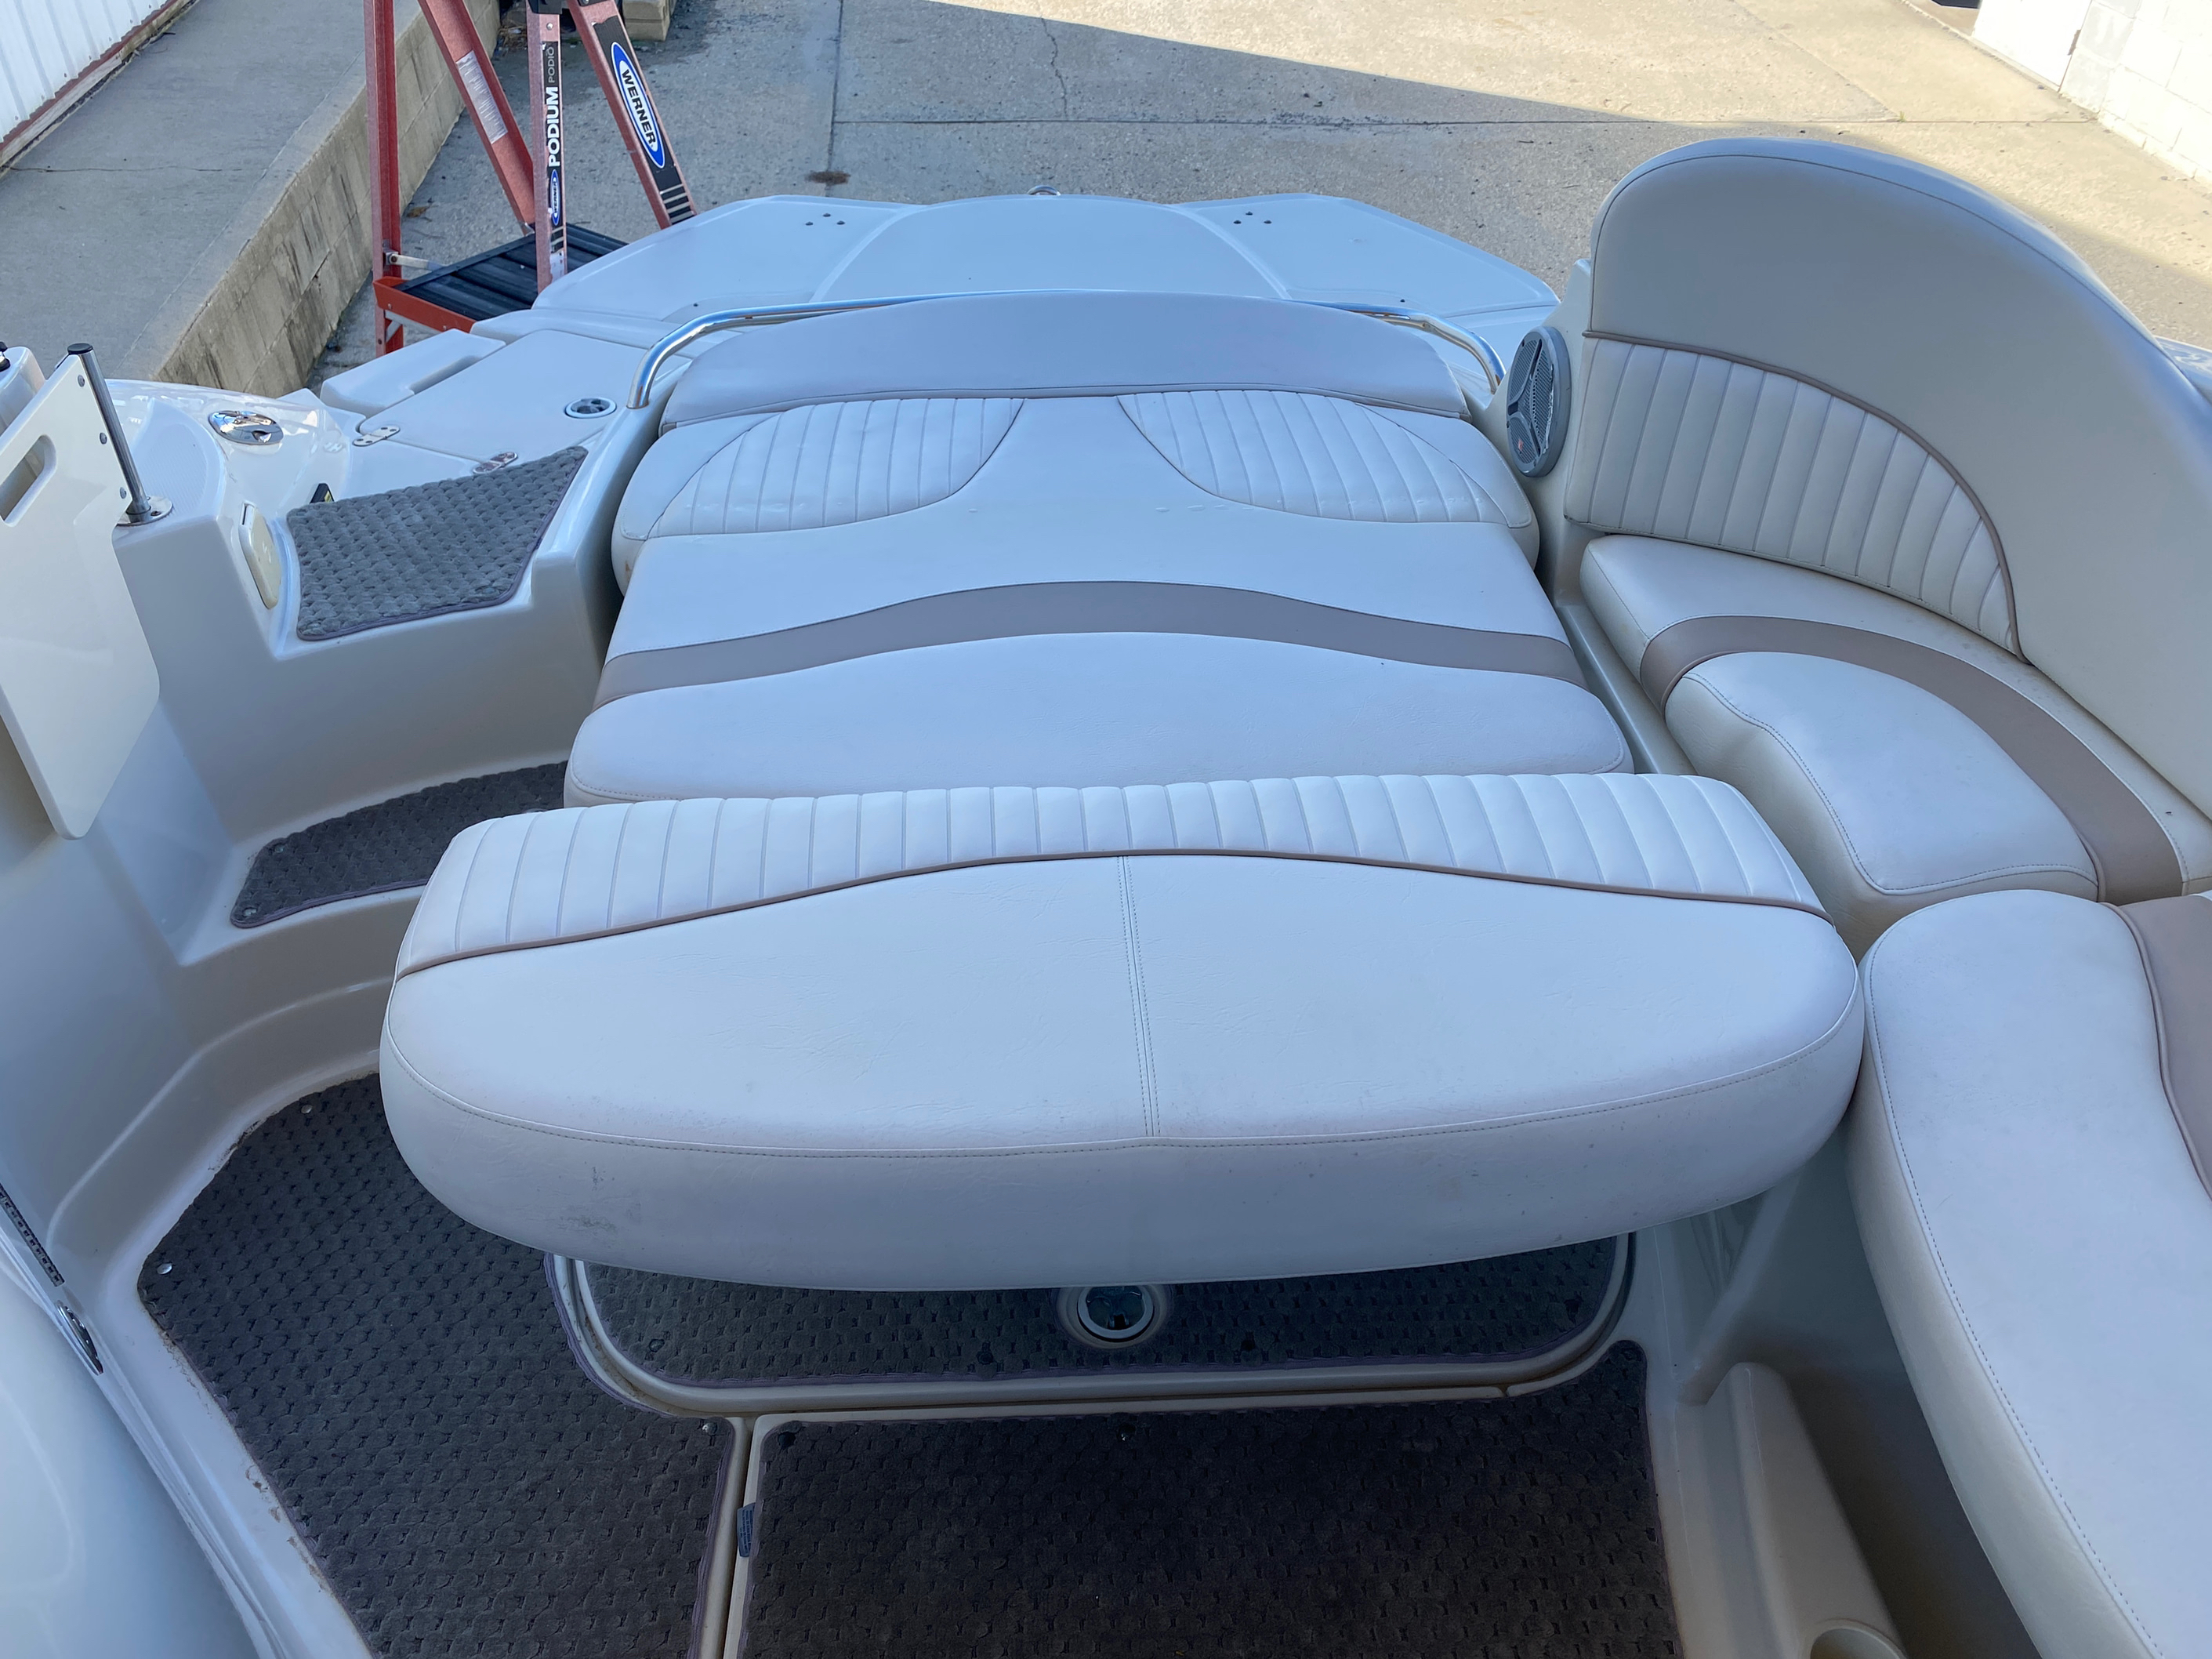 2008 Azure boat for sale, model of the boat is AZ 240 & Image # 4 of 18